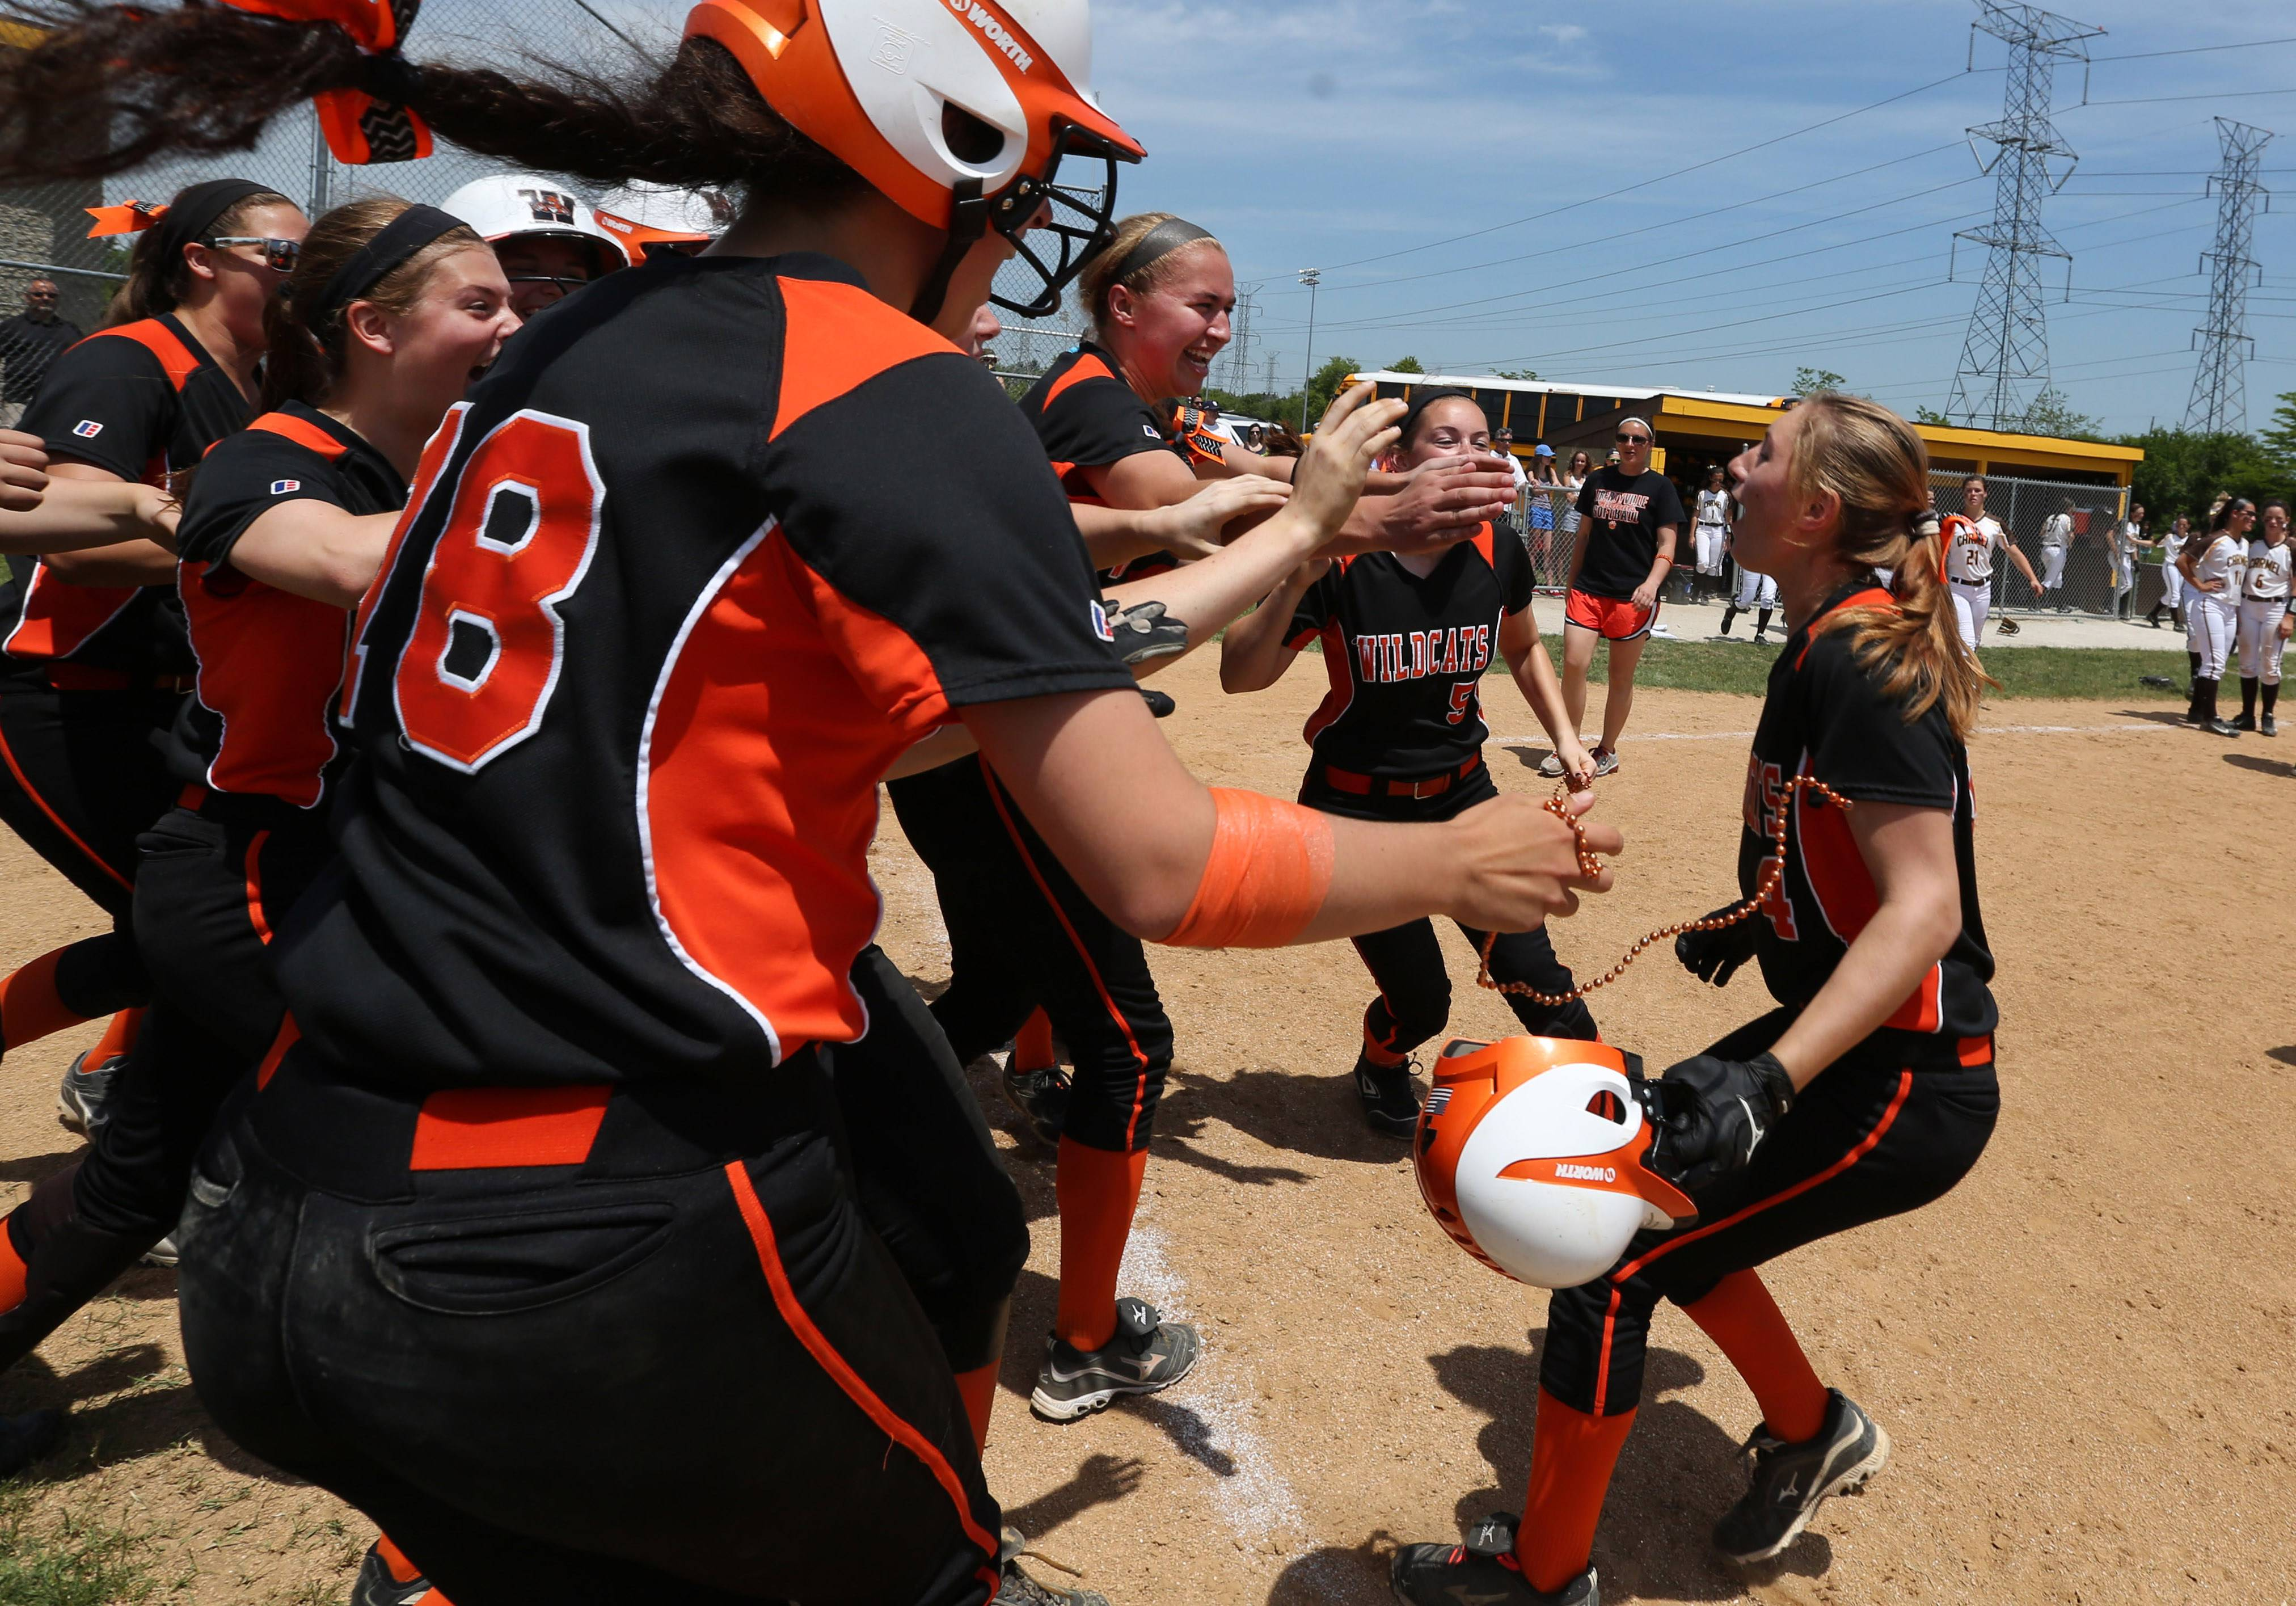 Libertyville's softball team rushes from the dugout to Tayler Oberman after her walk-off single against Carmel in the Class 4A Carmel softball regional final Saturday.